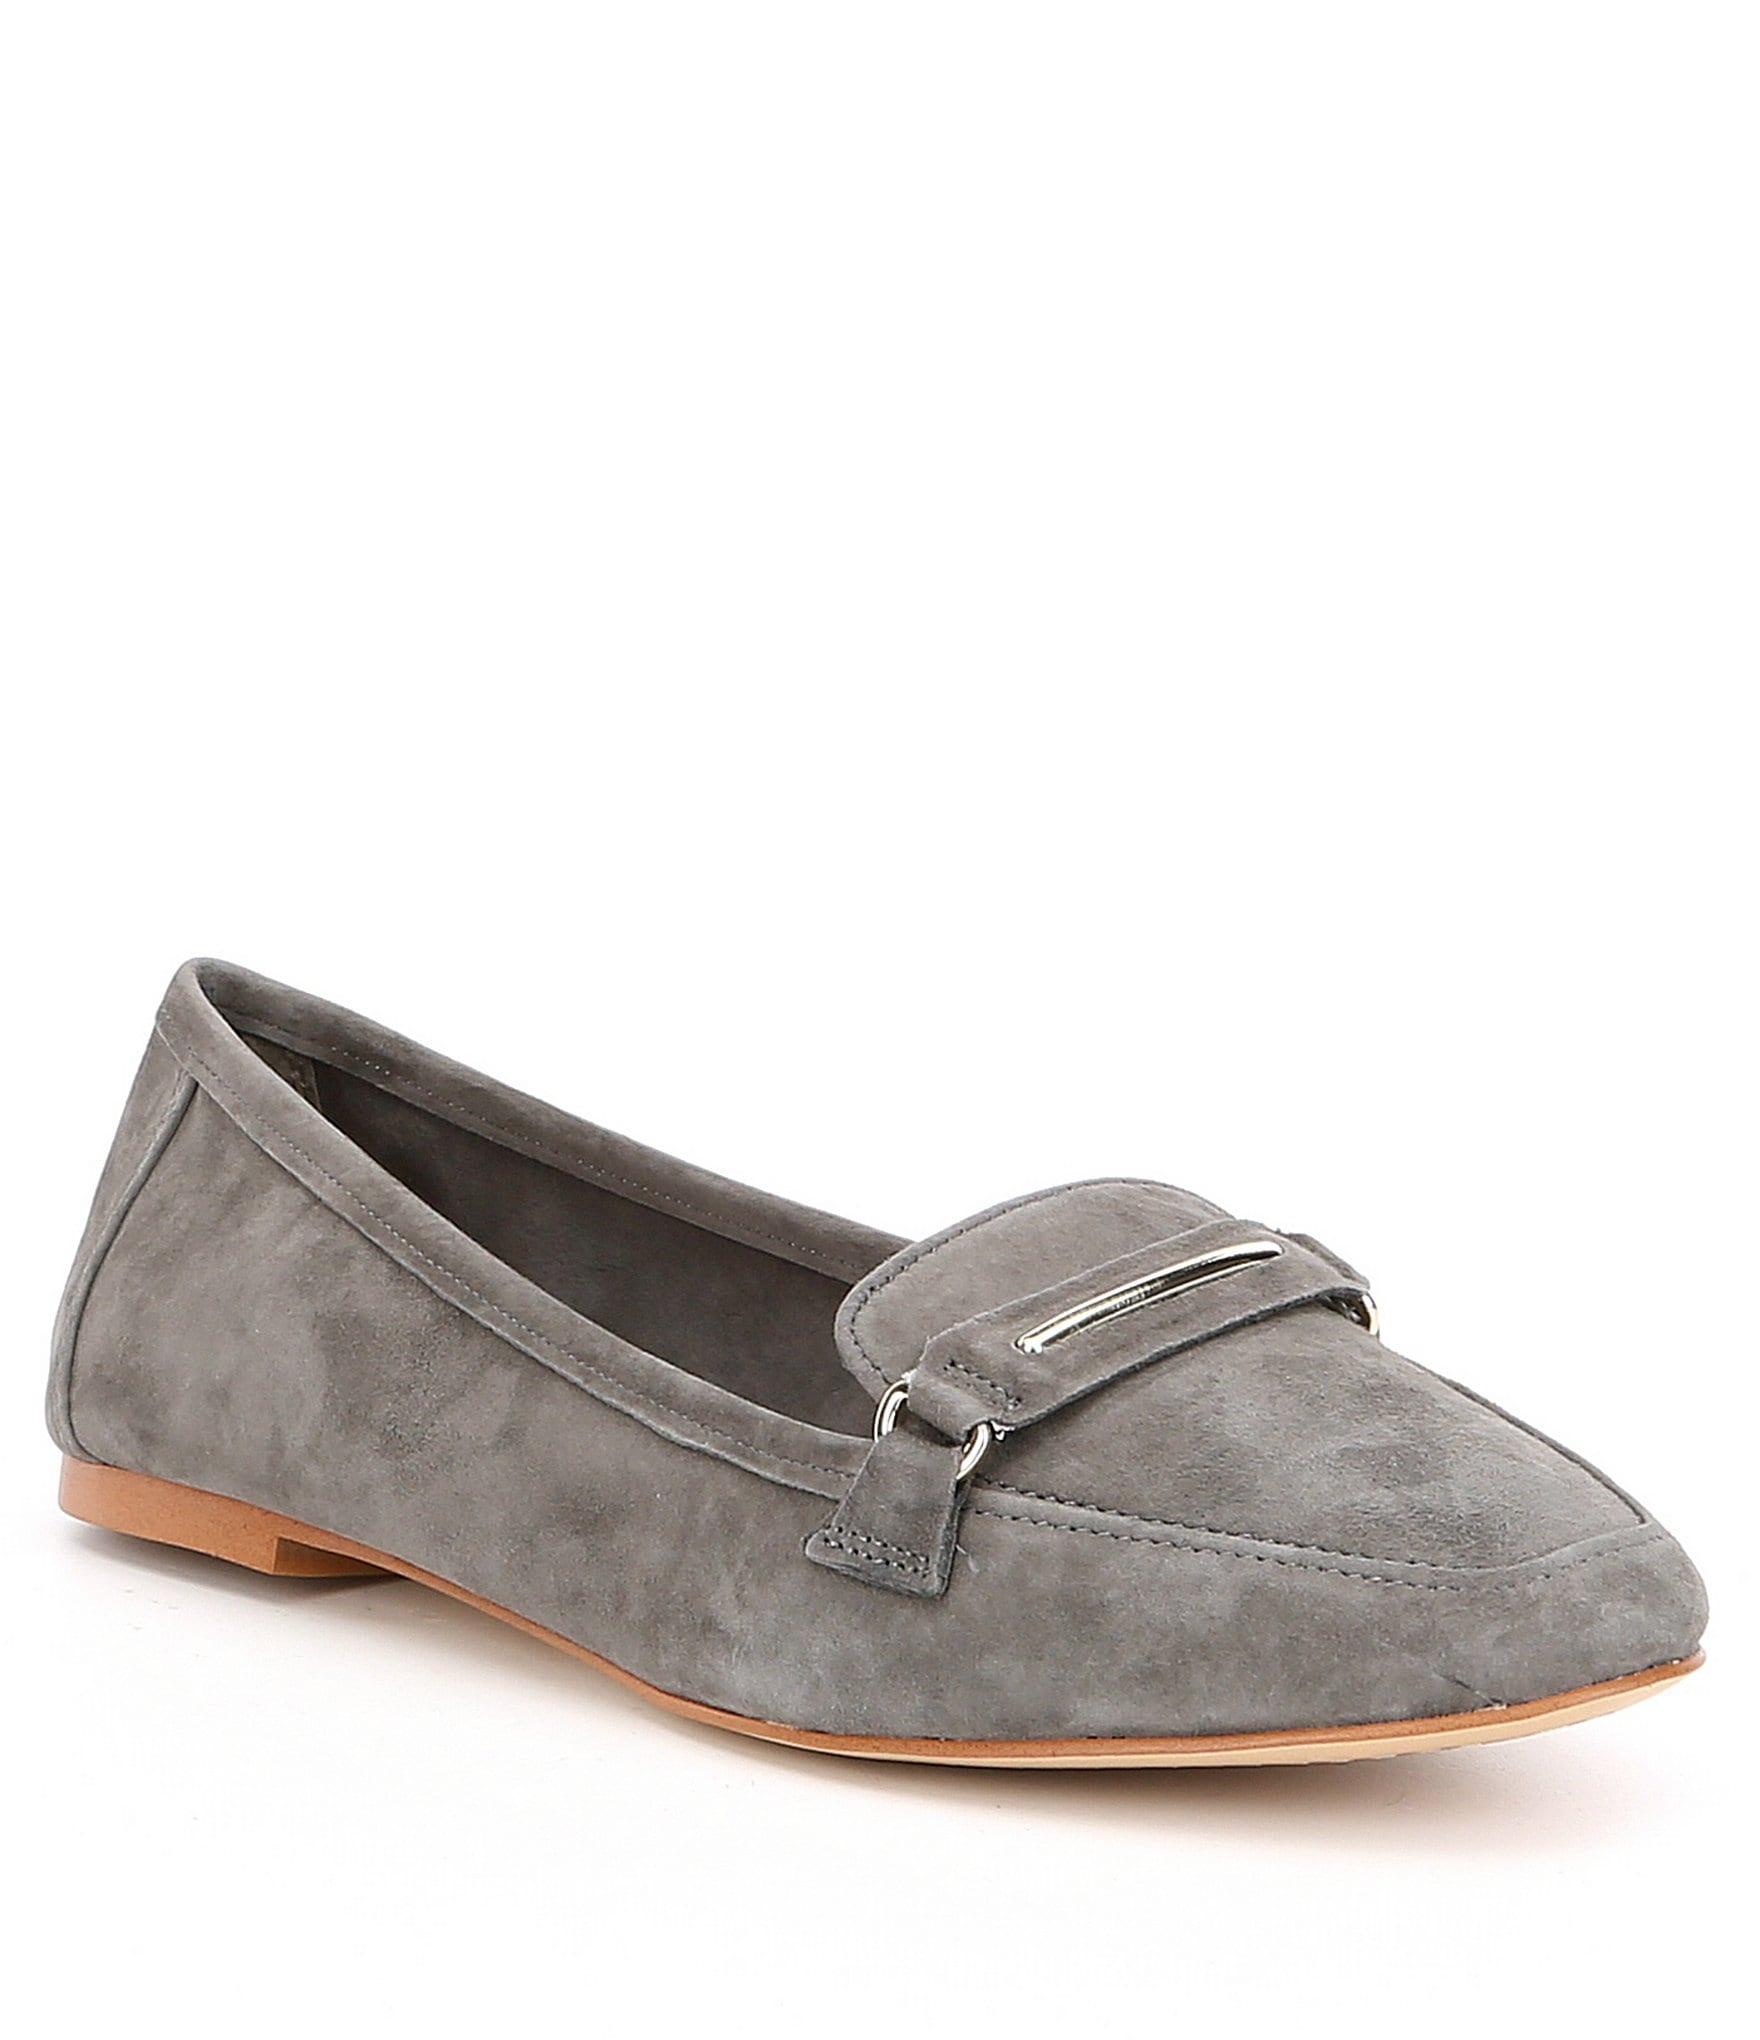 b95ebd4f7c6b Buy michael kors loafers grey   OFF40% Discounted